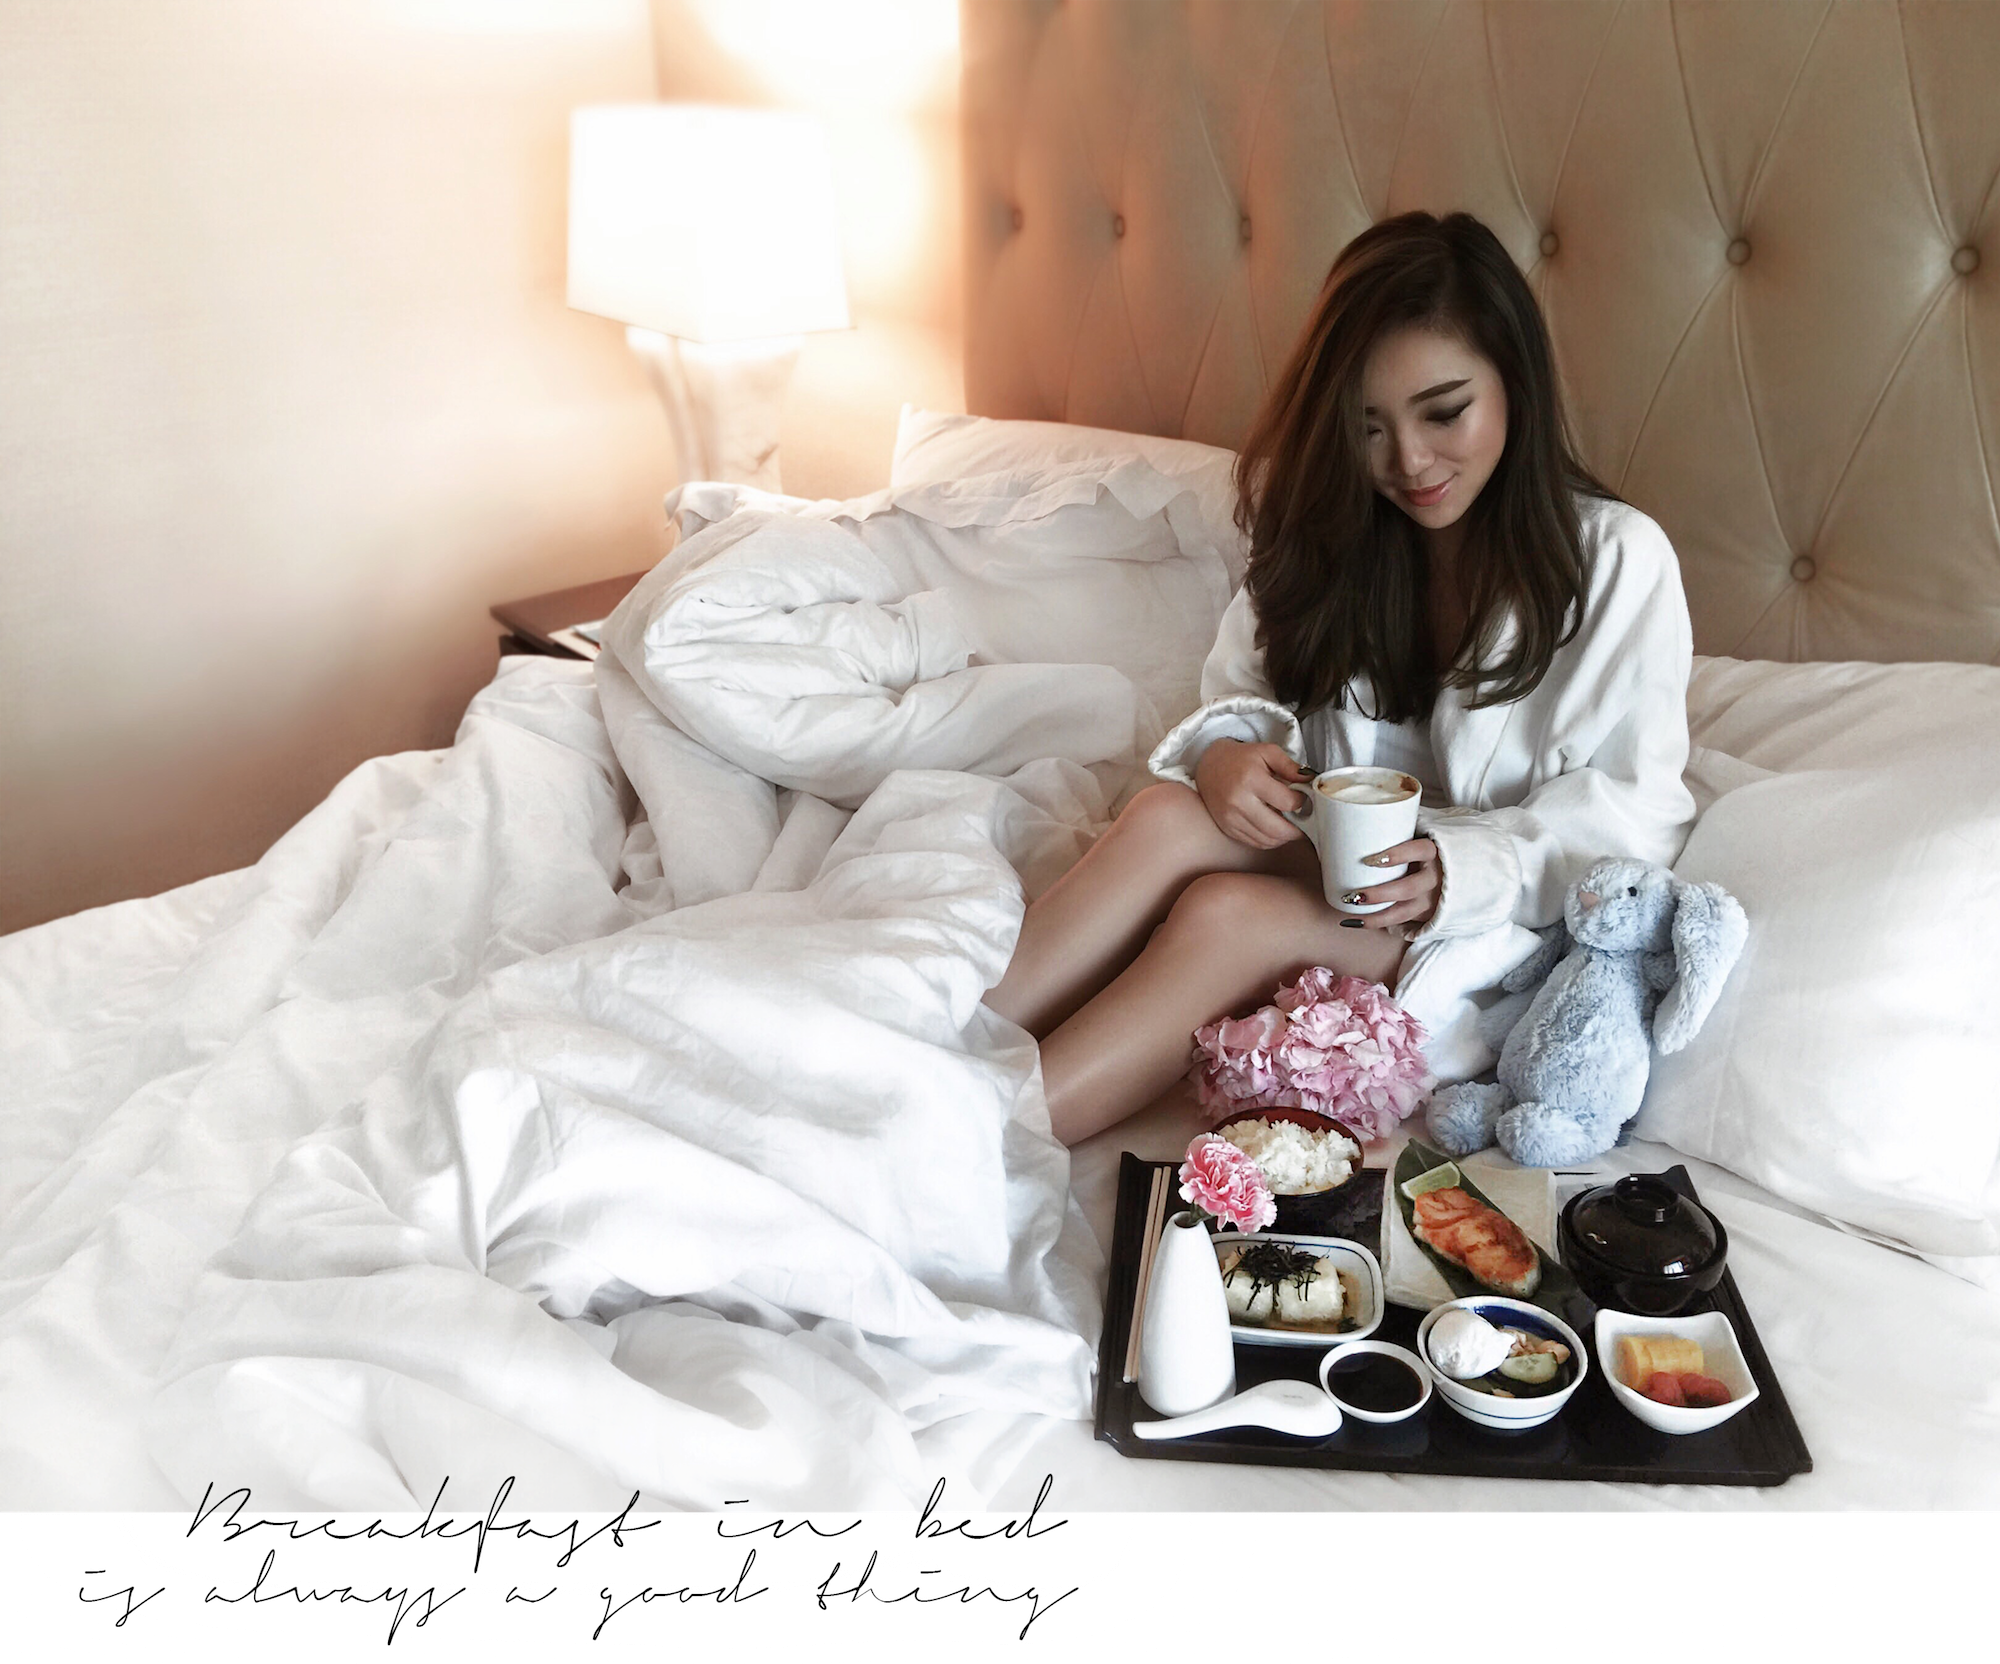 willabelle-ong-paledivision-street-style-fashion-travel-lifestyle-blog-four-seasons-hotel-singapore-editorial-retreat-luxury-suite-bedroom-1